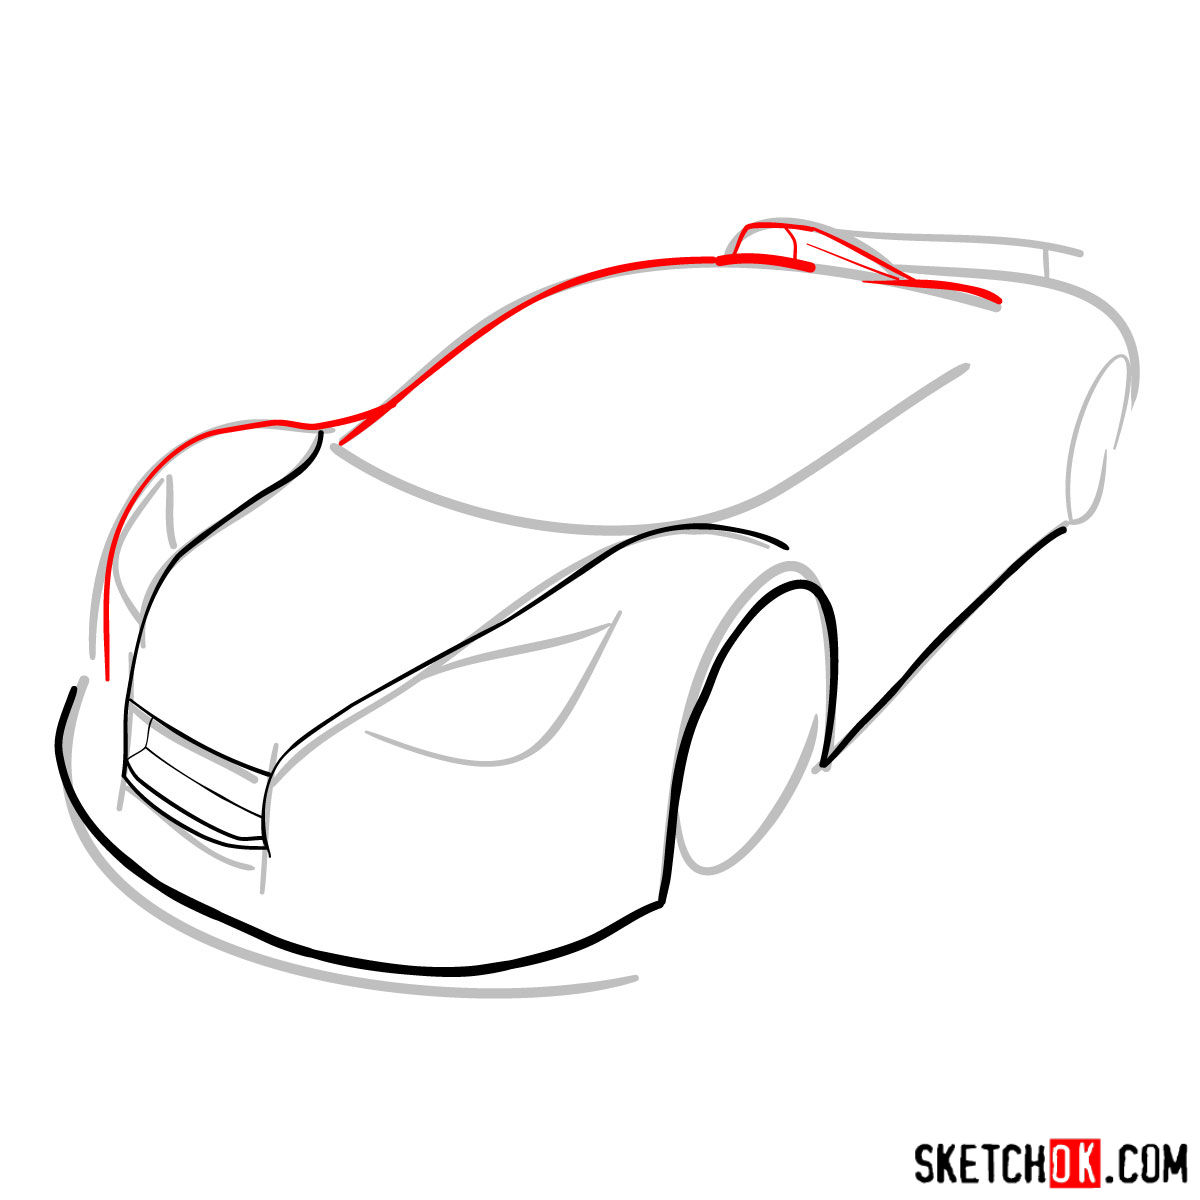 How to draw Gumpert Apolo Sport 2012 - step 04